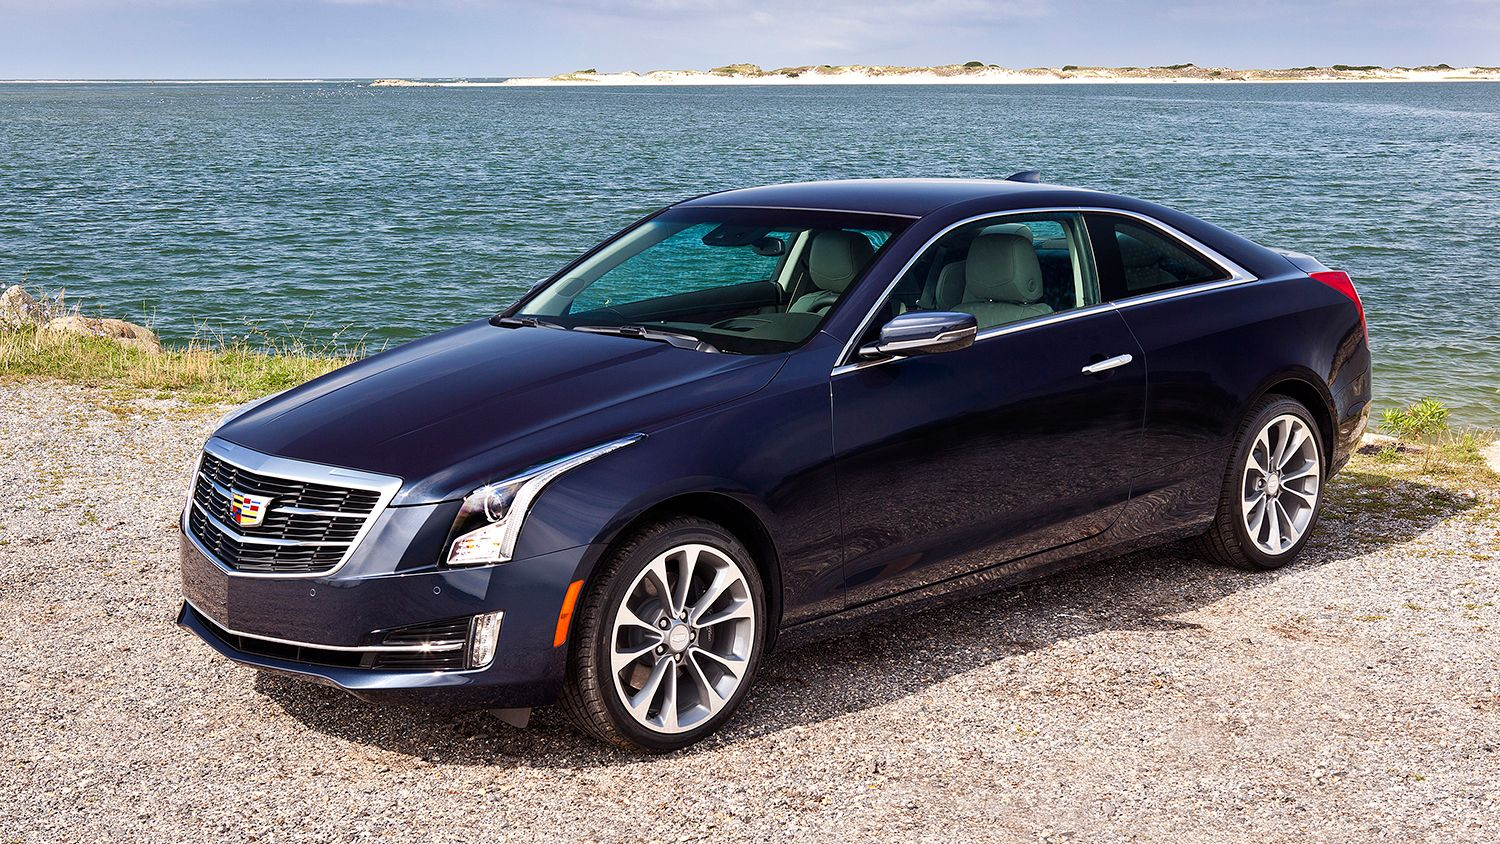 coupe cadillac v cts details edition special